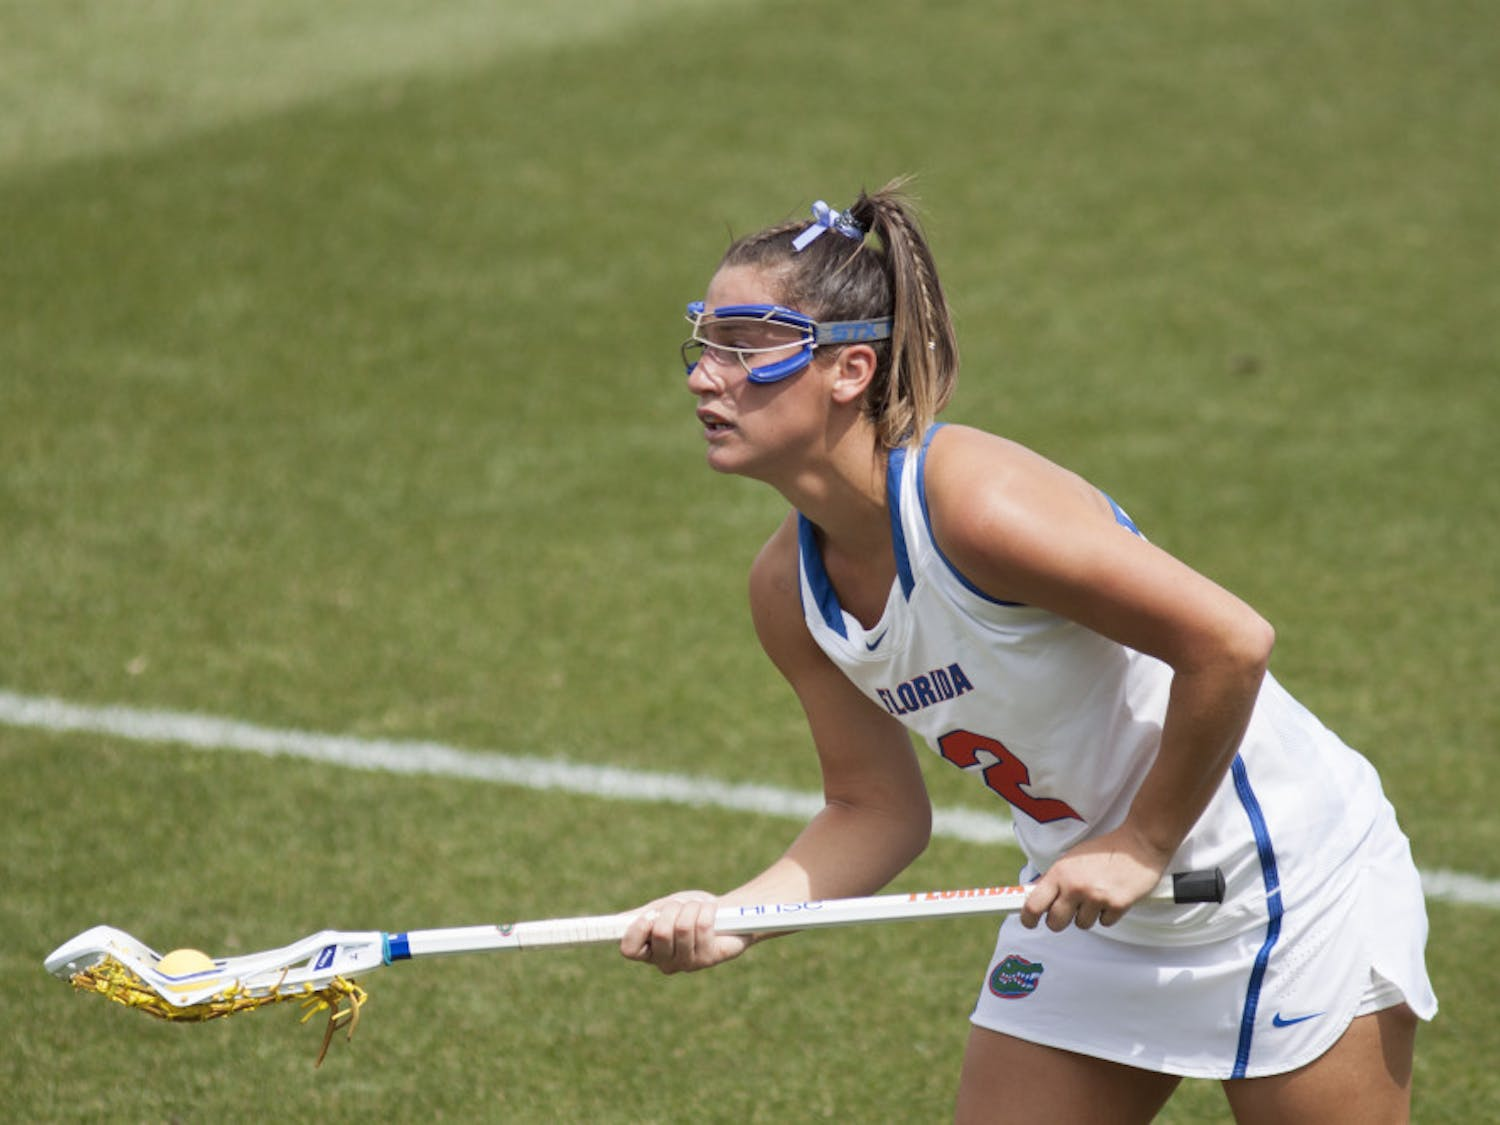 Sammi Burgess looks on during UF's win over Denver on March 25.